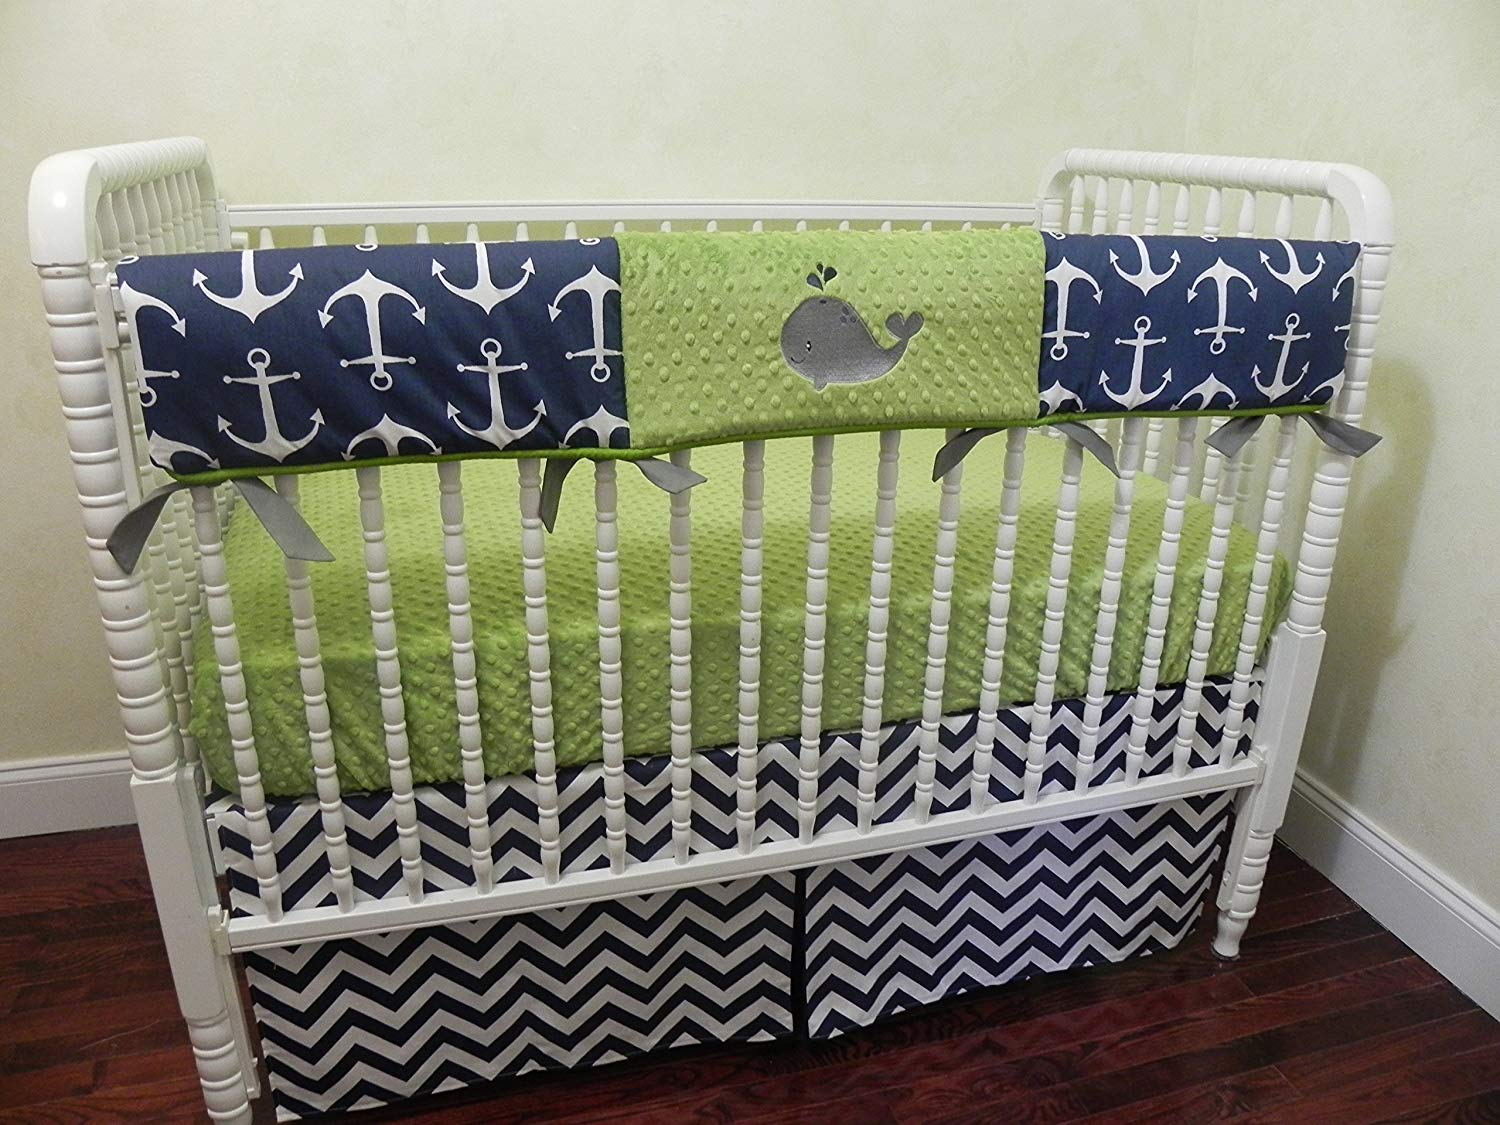 Cheap Lime Green Crib Bedding Find Lime Green Crib Bedding Deals On